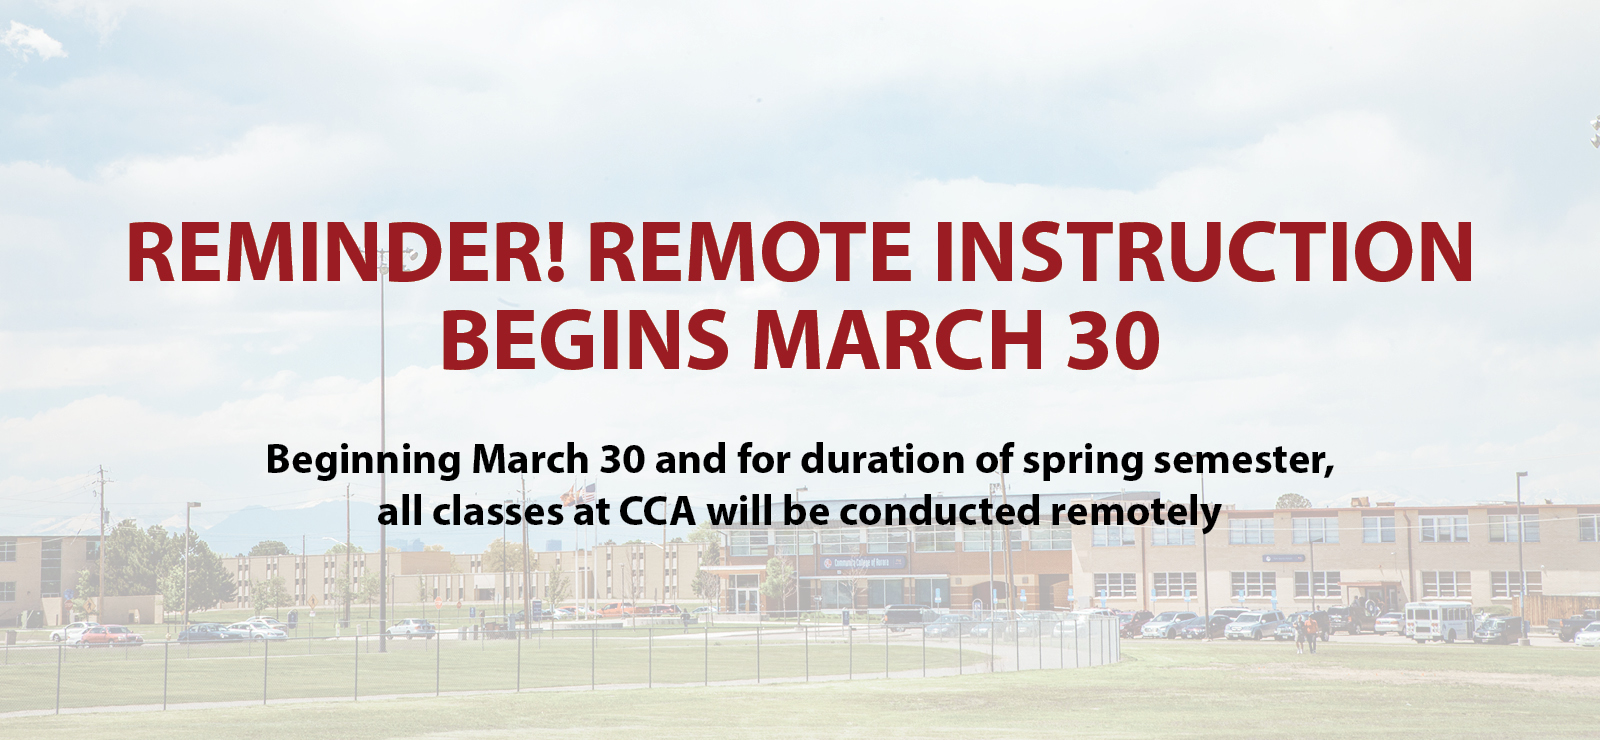 REMINDER! REMOTE INSTRUCTION BEGINS MARCH 30 Beginning March 30 and for duration of spring semester, all classes at CCA will be conducted remotely